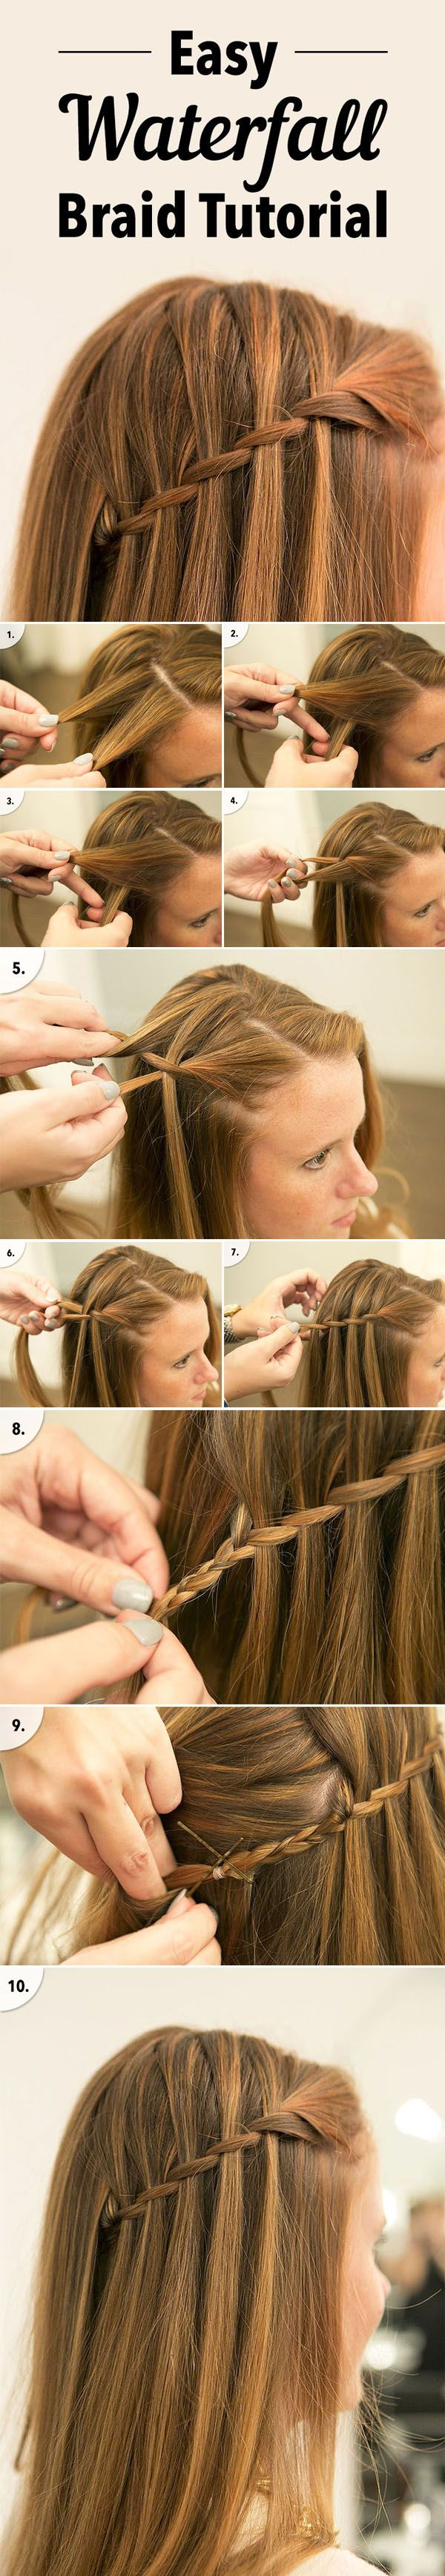 18 DIY Wedding Hairstyles with Tutorials to Try on Your Own ...